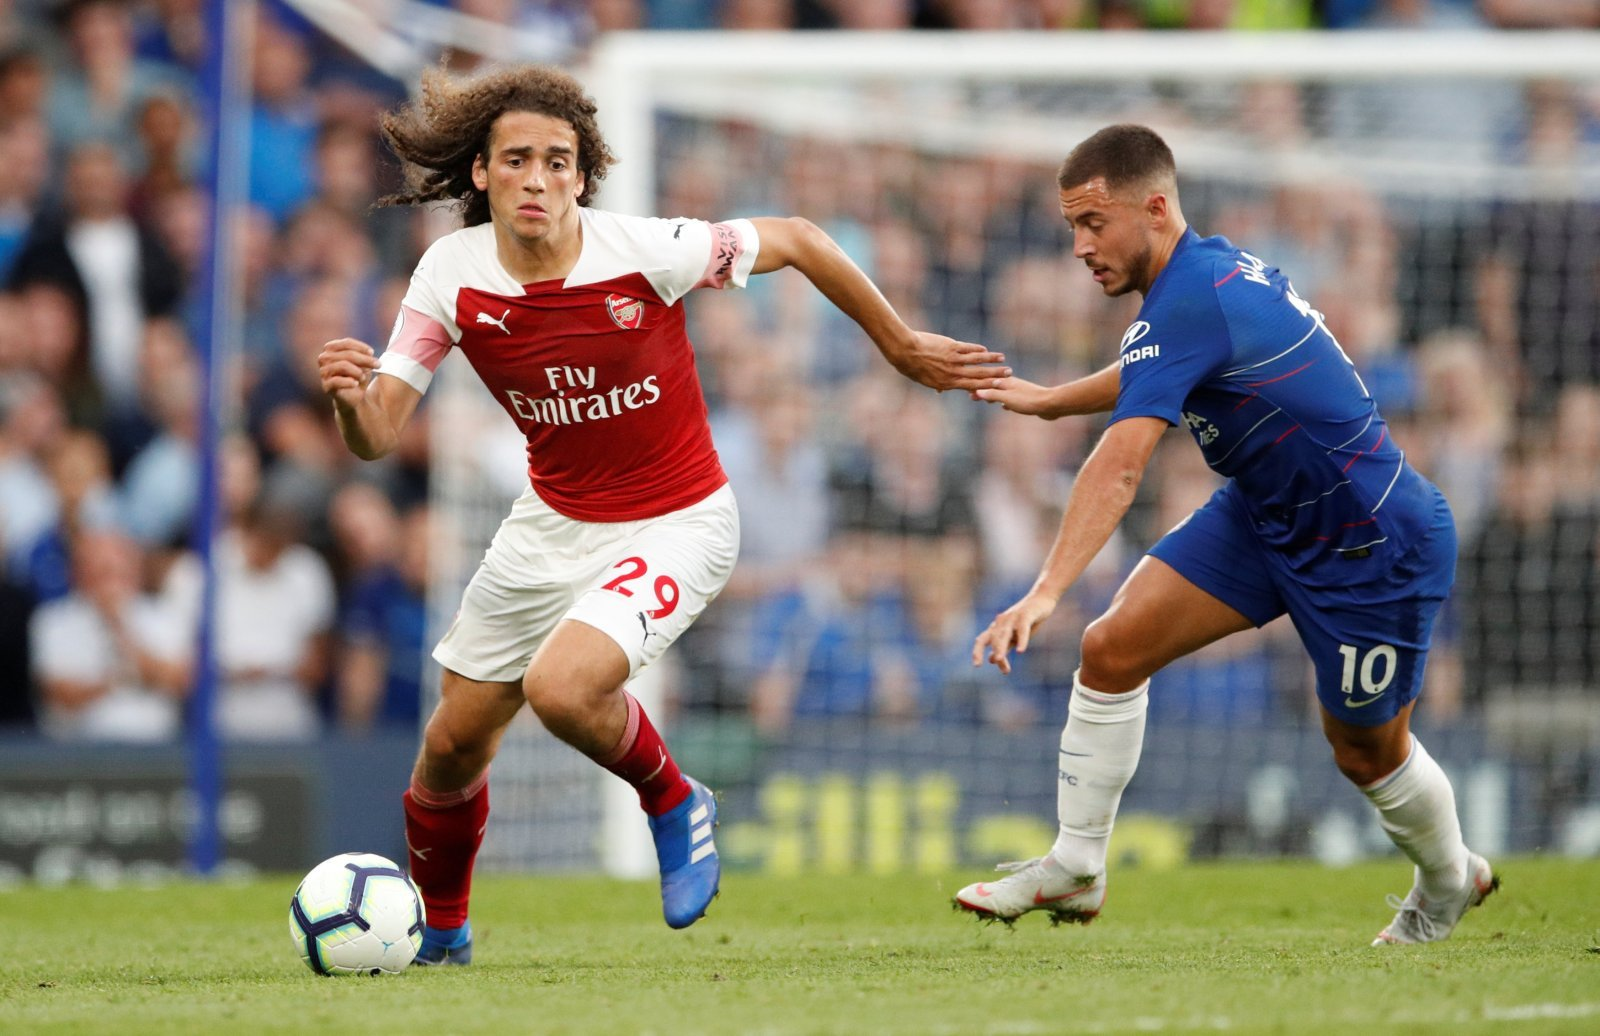 TT Introduces: Arsenal wonderkid Mattéo Guendouzi